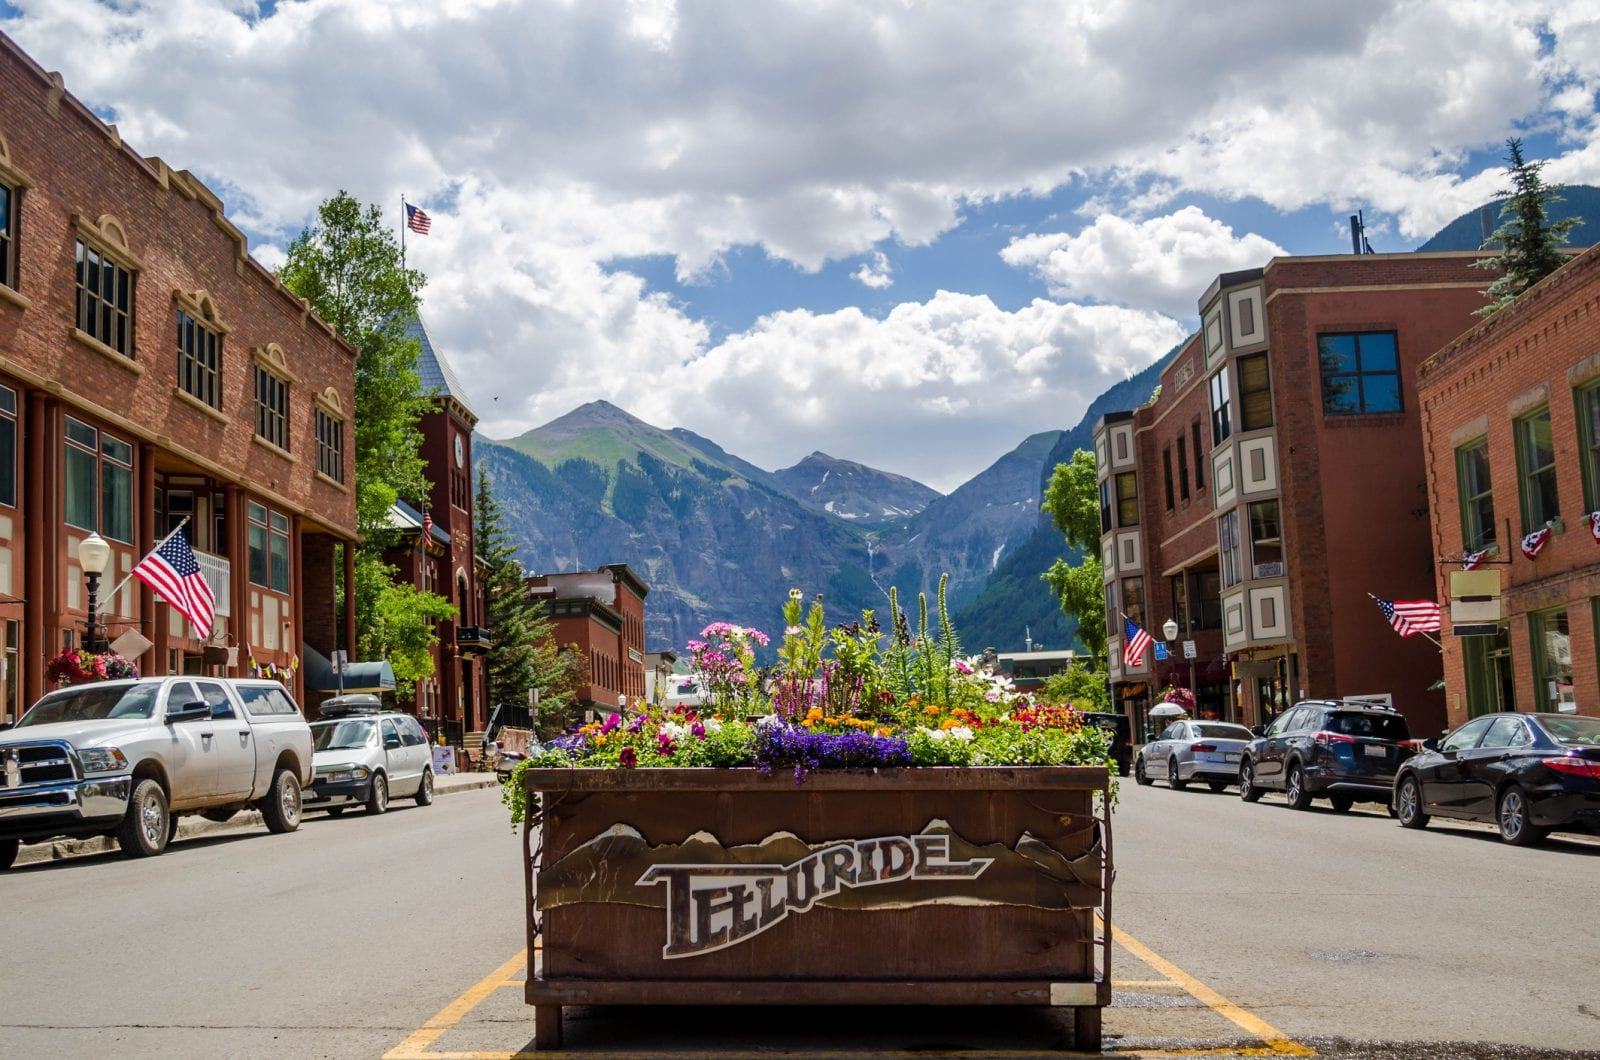 image of town of Telluride